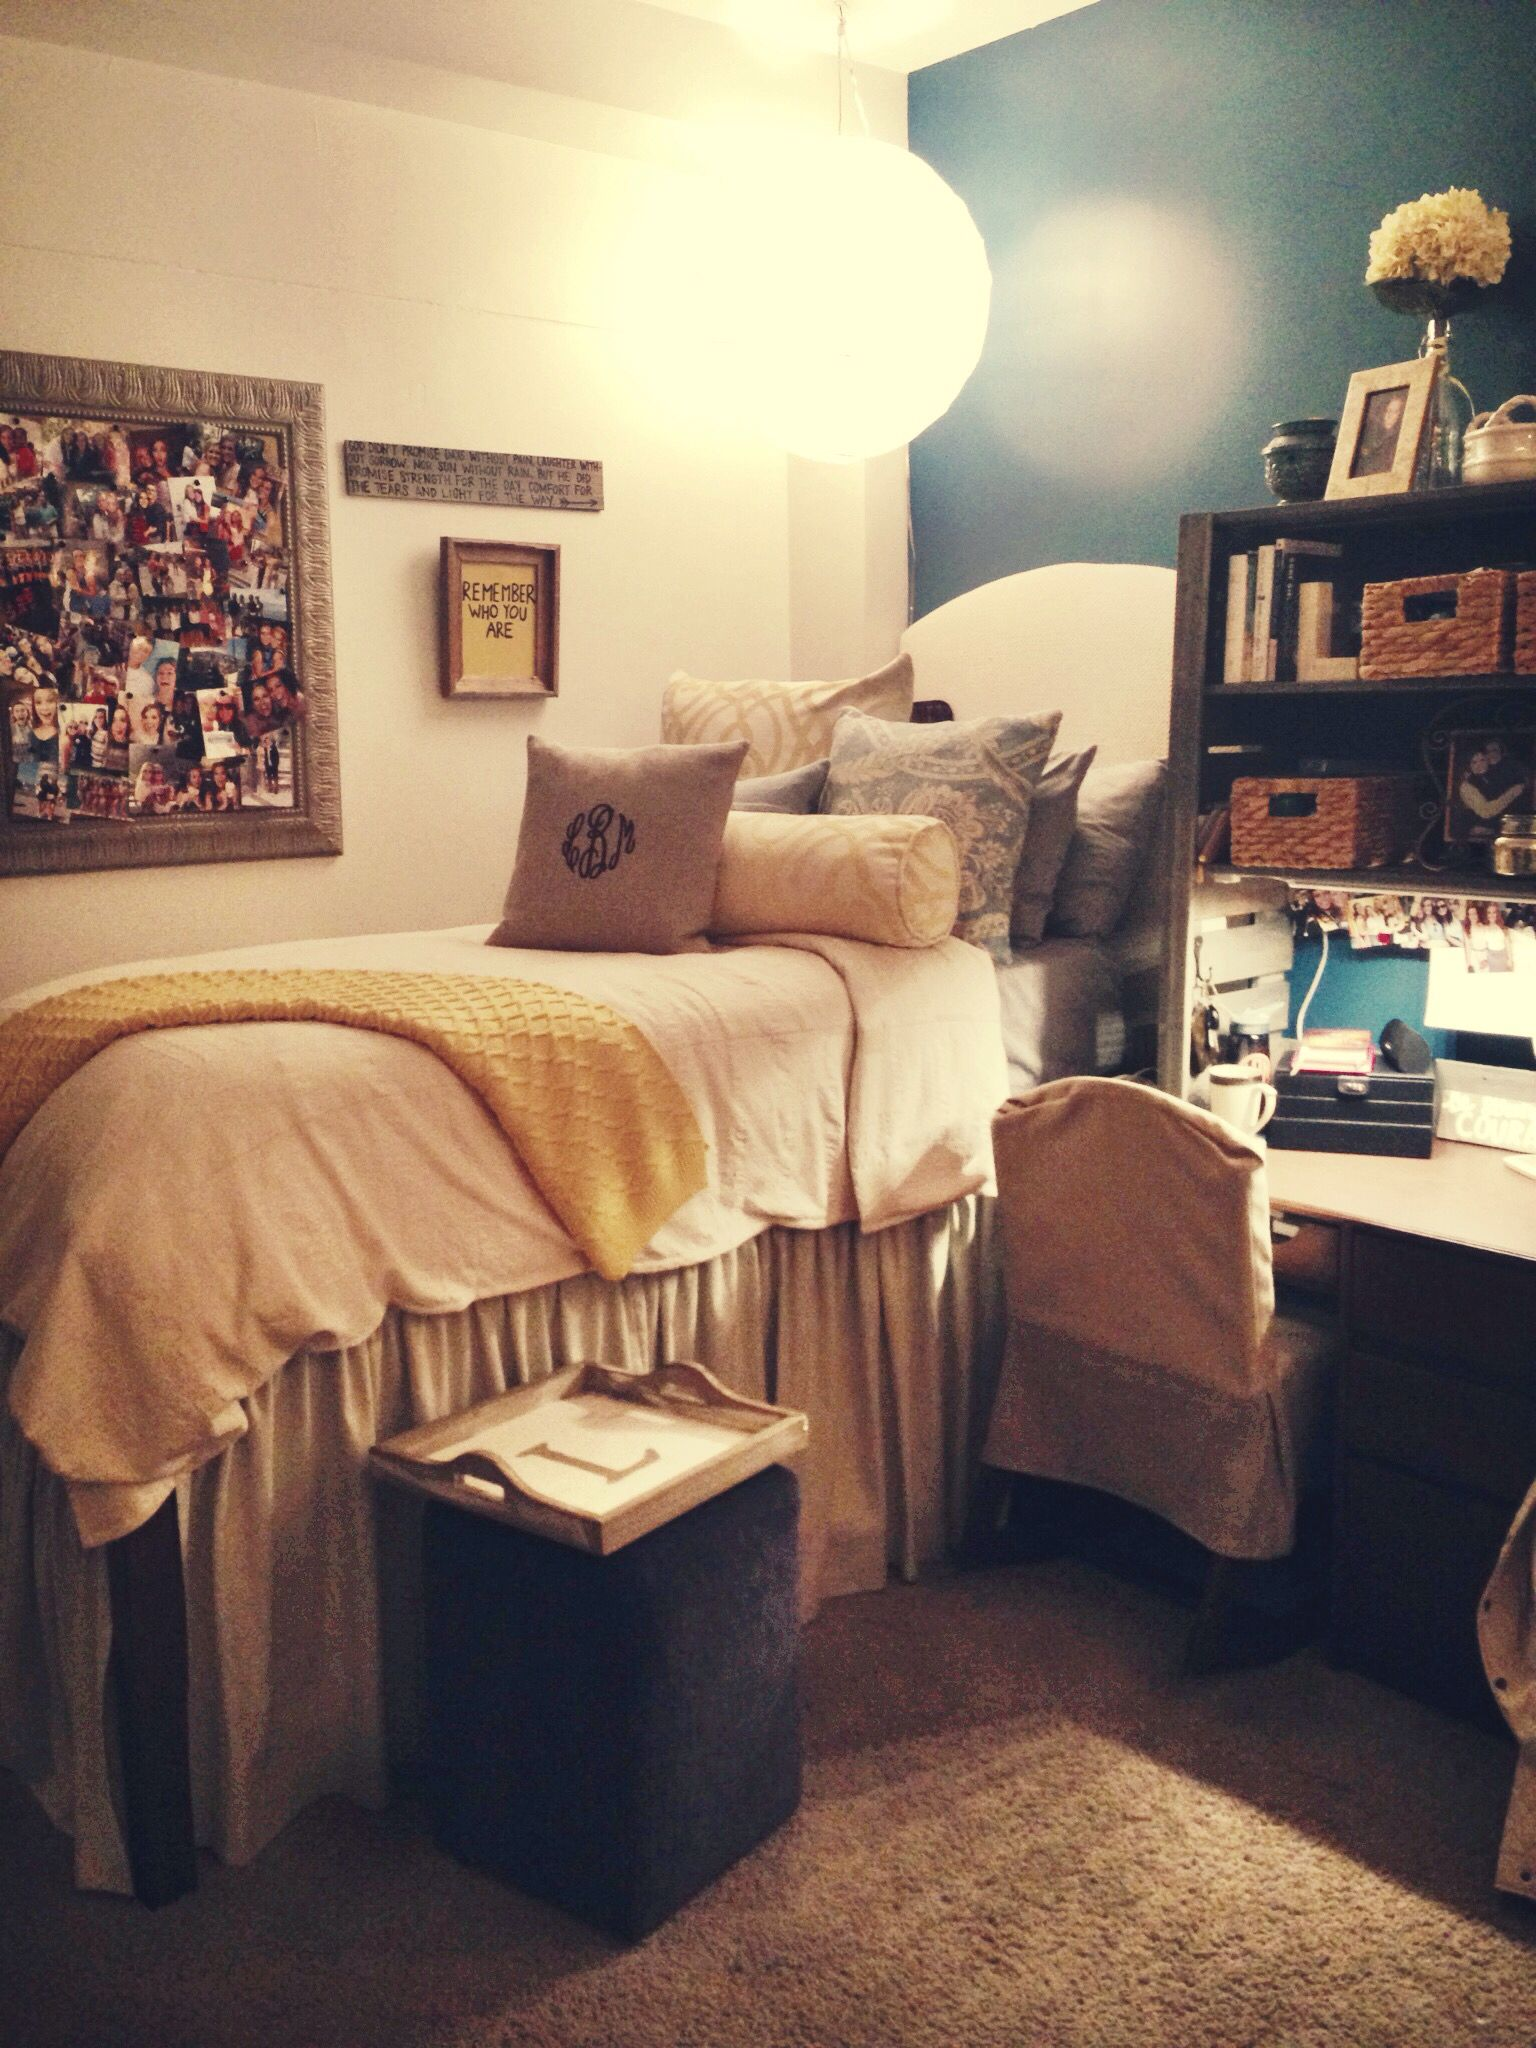 Auburn dorm room c o l l e g e in 2019 cool dorm rooms - College room decor ideas ...